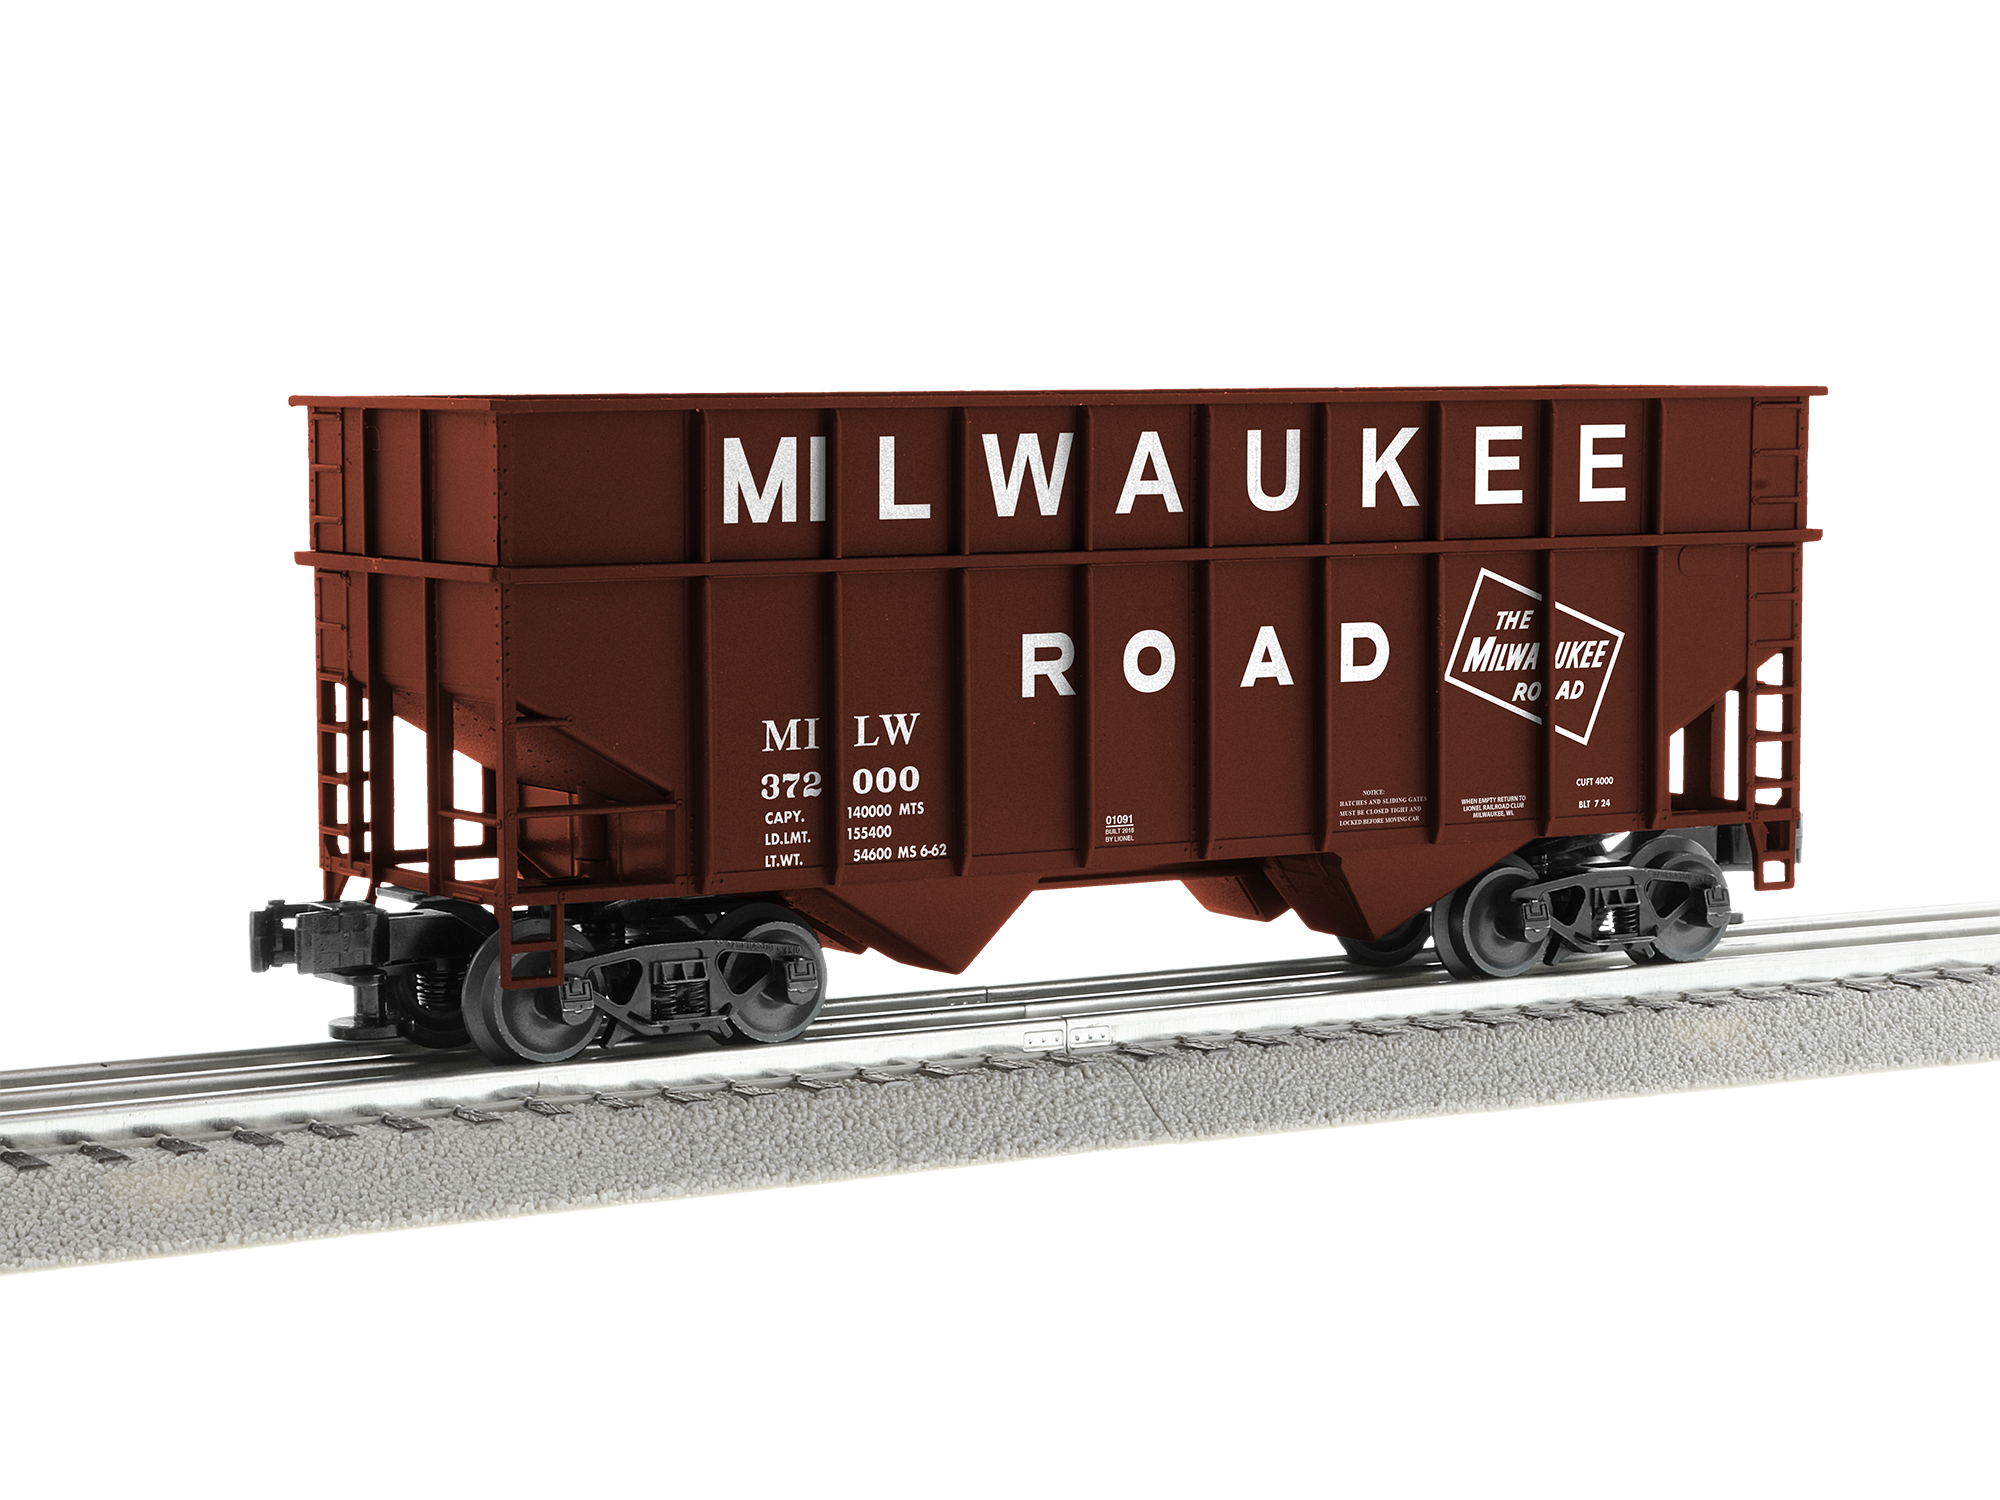 1901091 LRRC Milwaukee WdChp Hpr_#3272000 (2).png